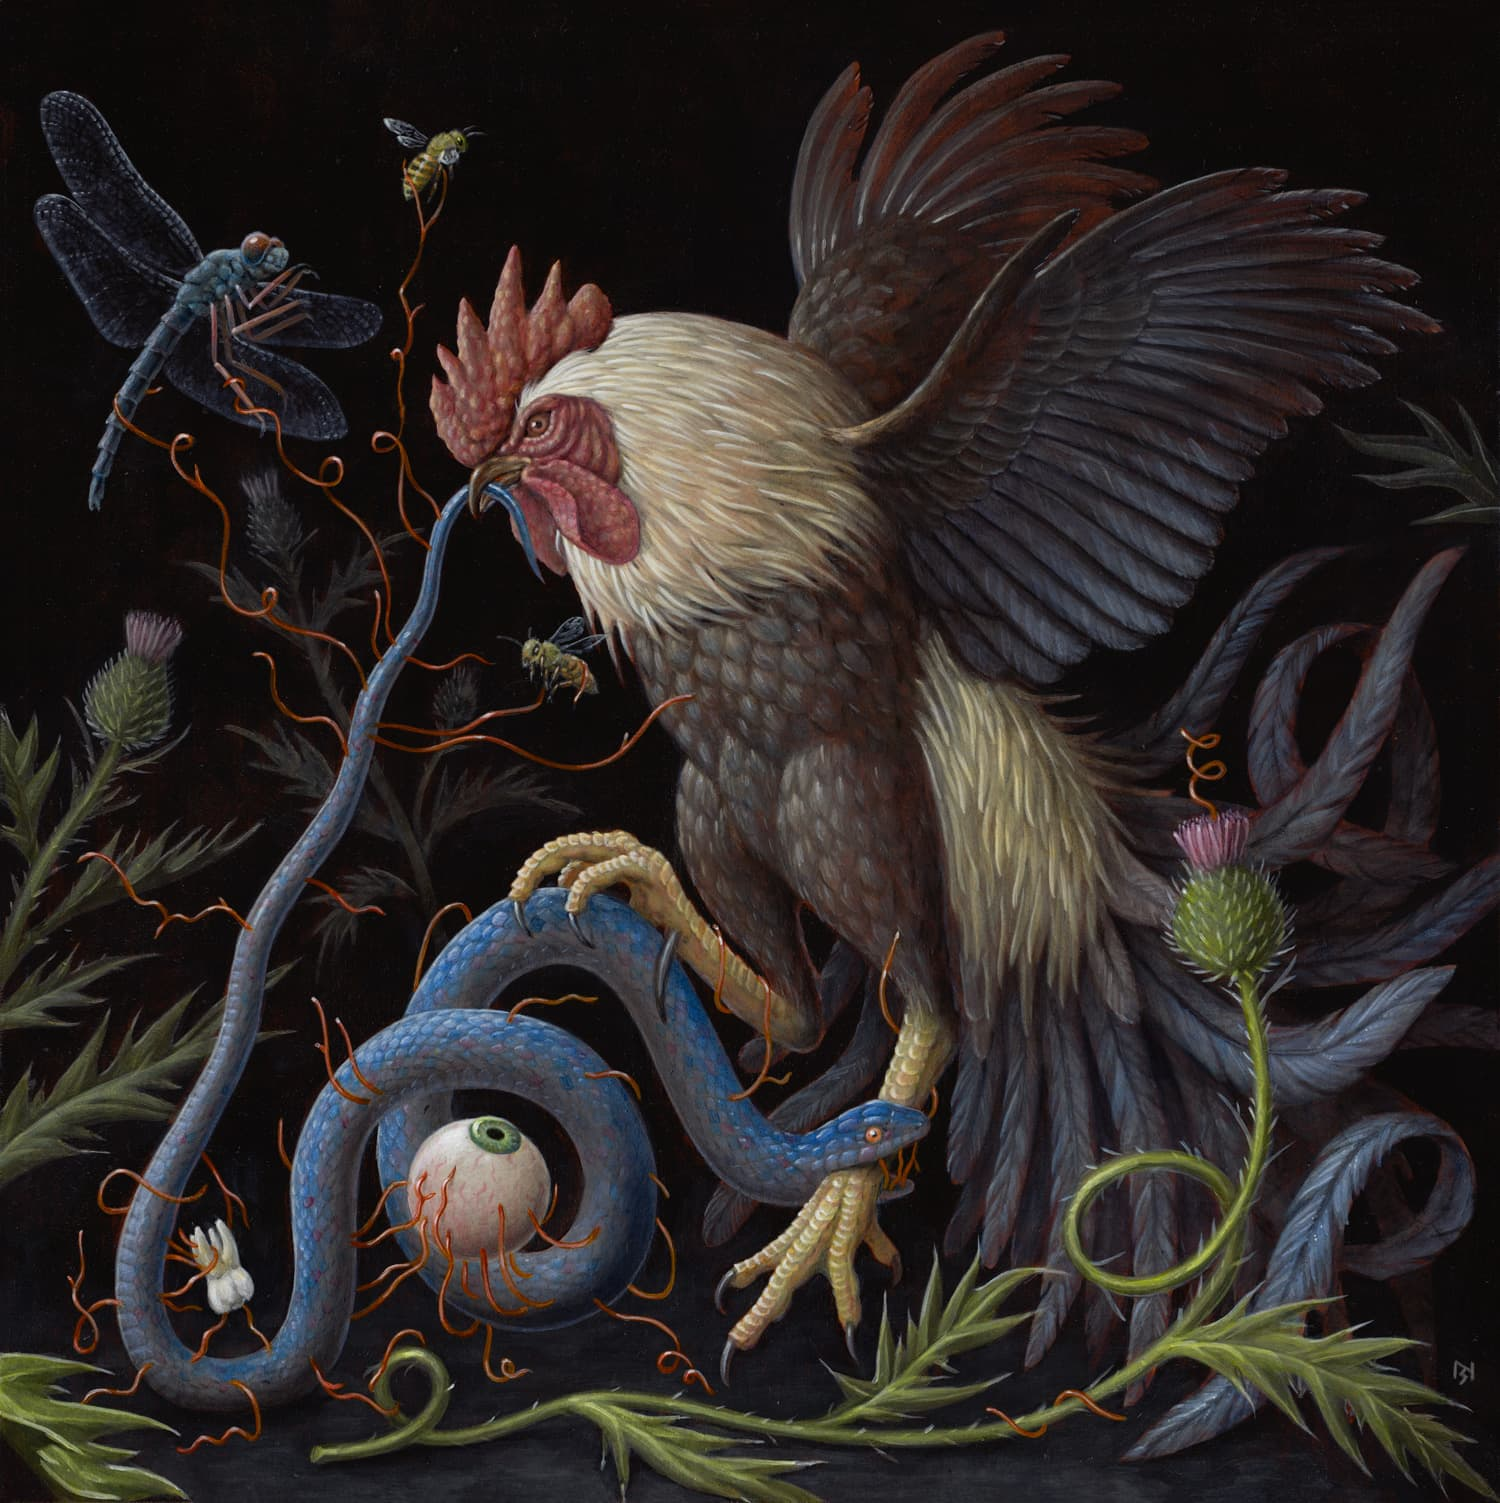 The-Rooster-by-Nick-Sheehy.jpg